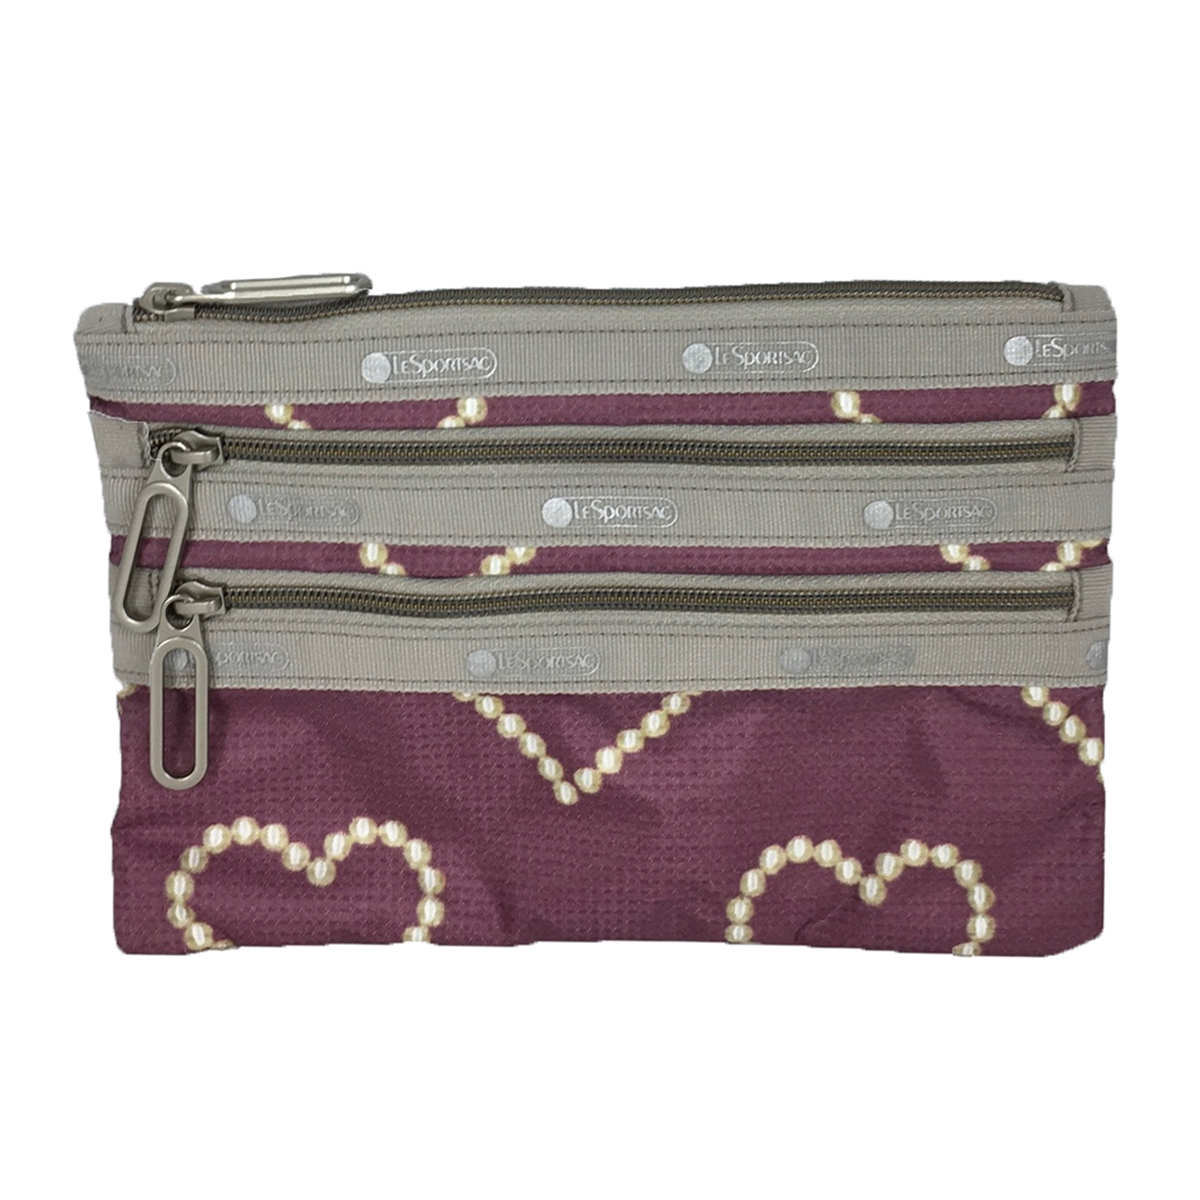 3 zipper makeup bag